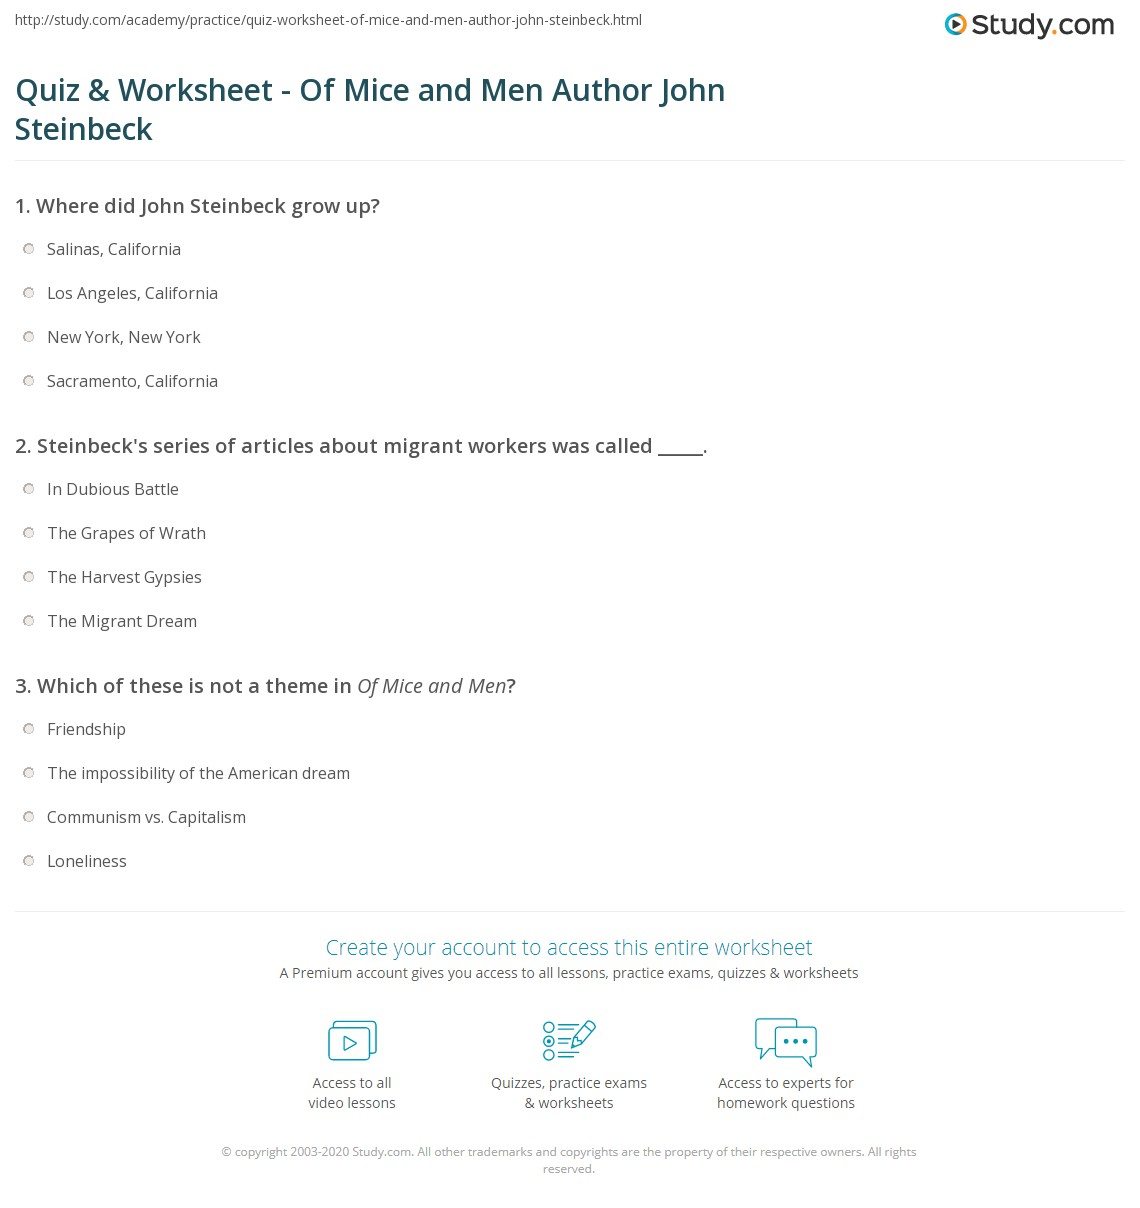 an analysis of the theme of loneliness in john steinbecks of mice and men The theme of loneliness in 'of mice & men' the novel portrays this idea of loneliness throughout john steinbeck's of mice and men character analysis.